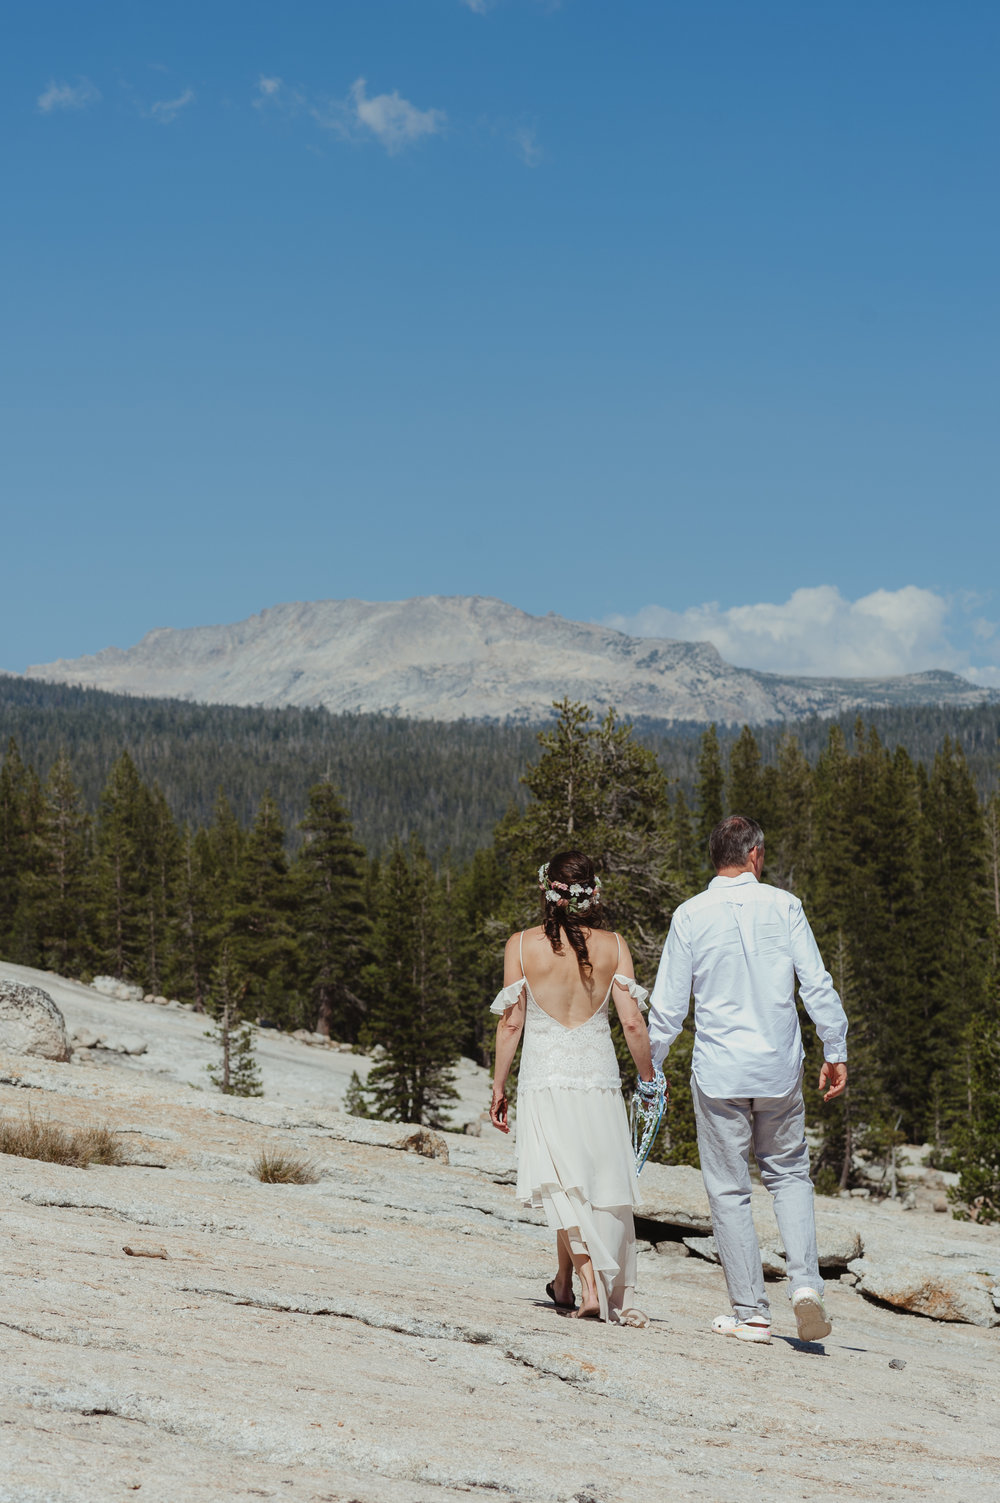 tenaya-lake-yosemite-national-park-wedding-photographer-vc56.jpg